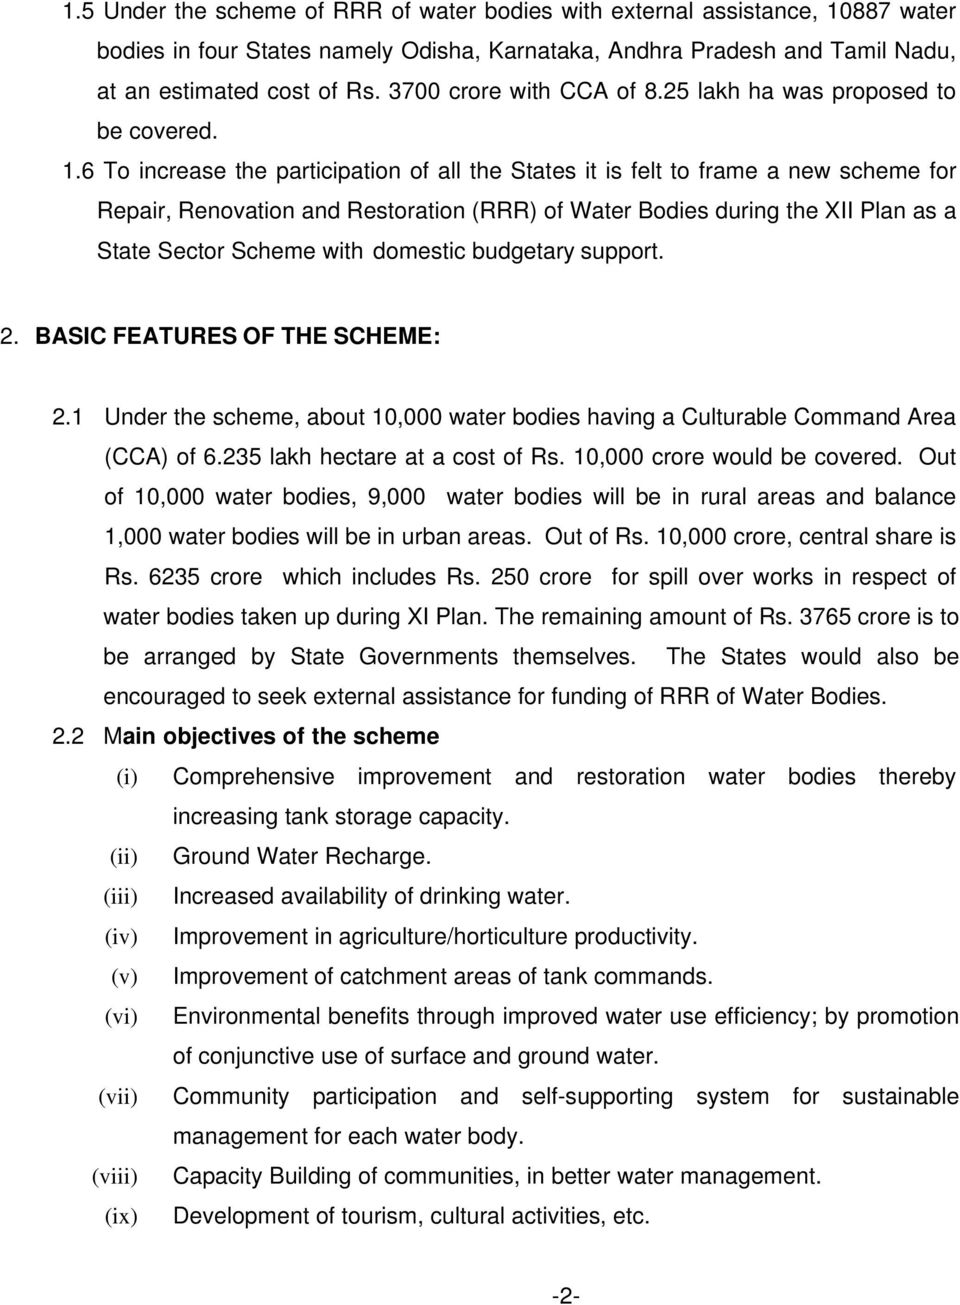 6 To increase the participation of all the States it is felt to frame a new scheme for Repair, Renovation and Restoration (RRR) of Water Bodies during the XII Plan as a State Sector Scheme with